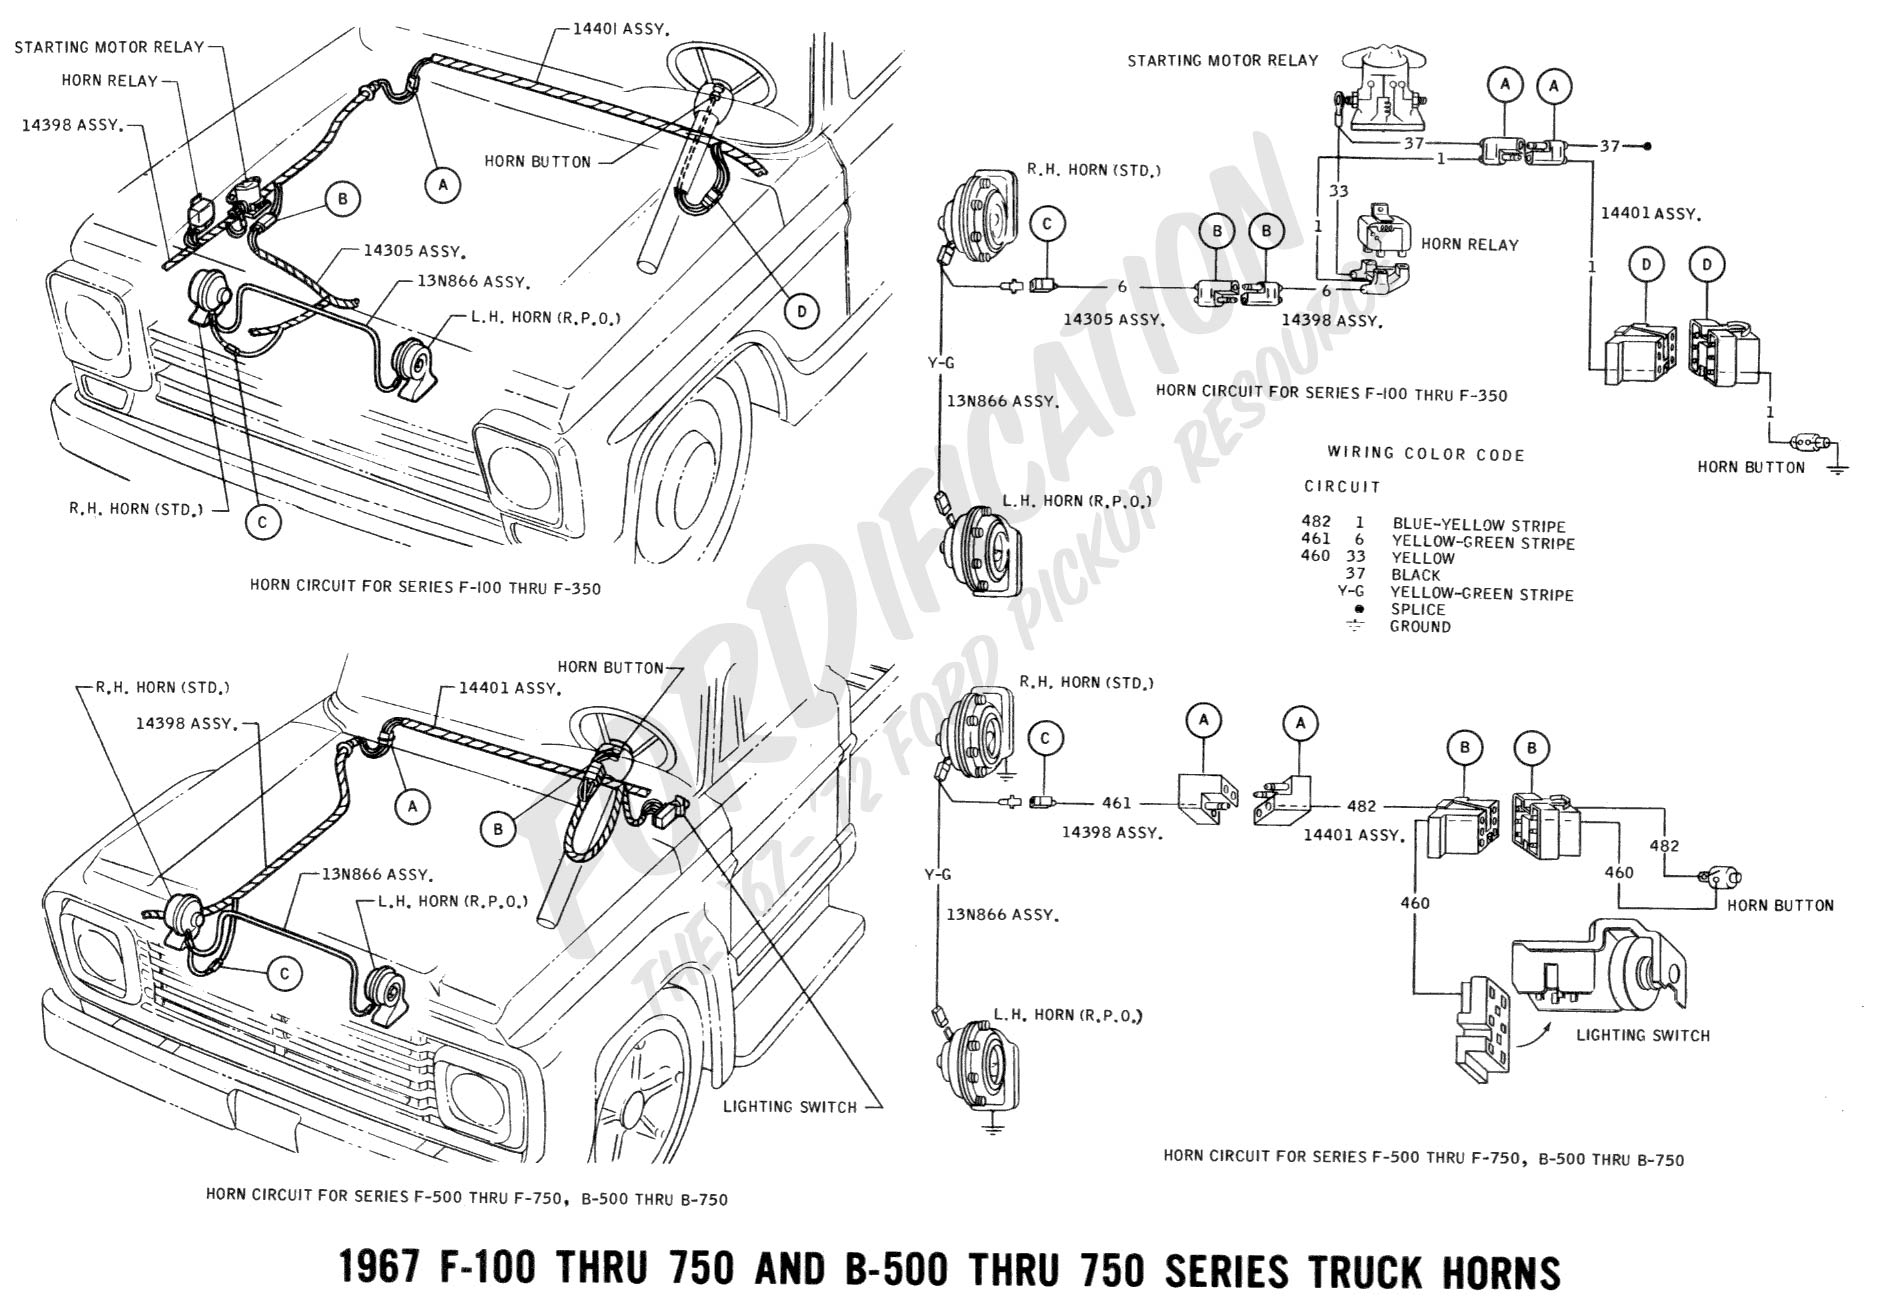 1967 ford f100 wiring diagram wiring diagram Ford Pinto Ignition Wiring 1967 ford f100 wiring diagram